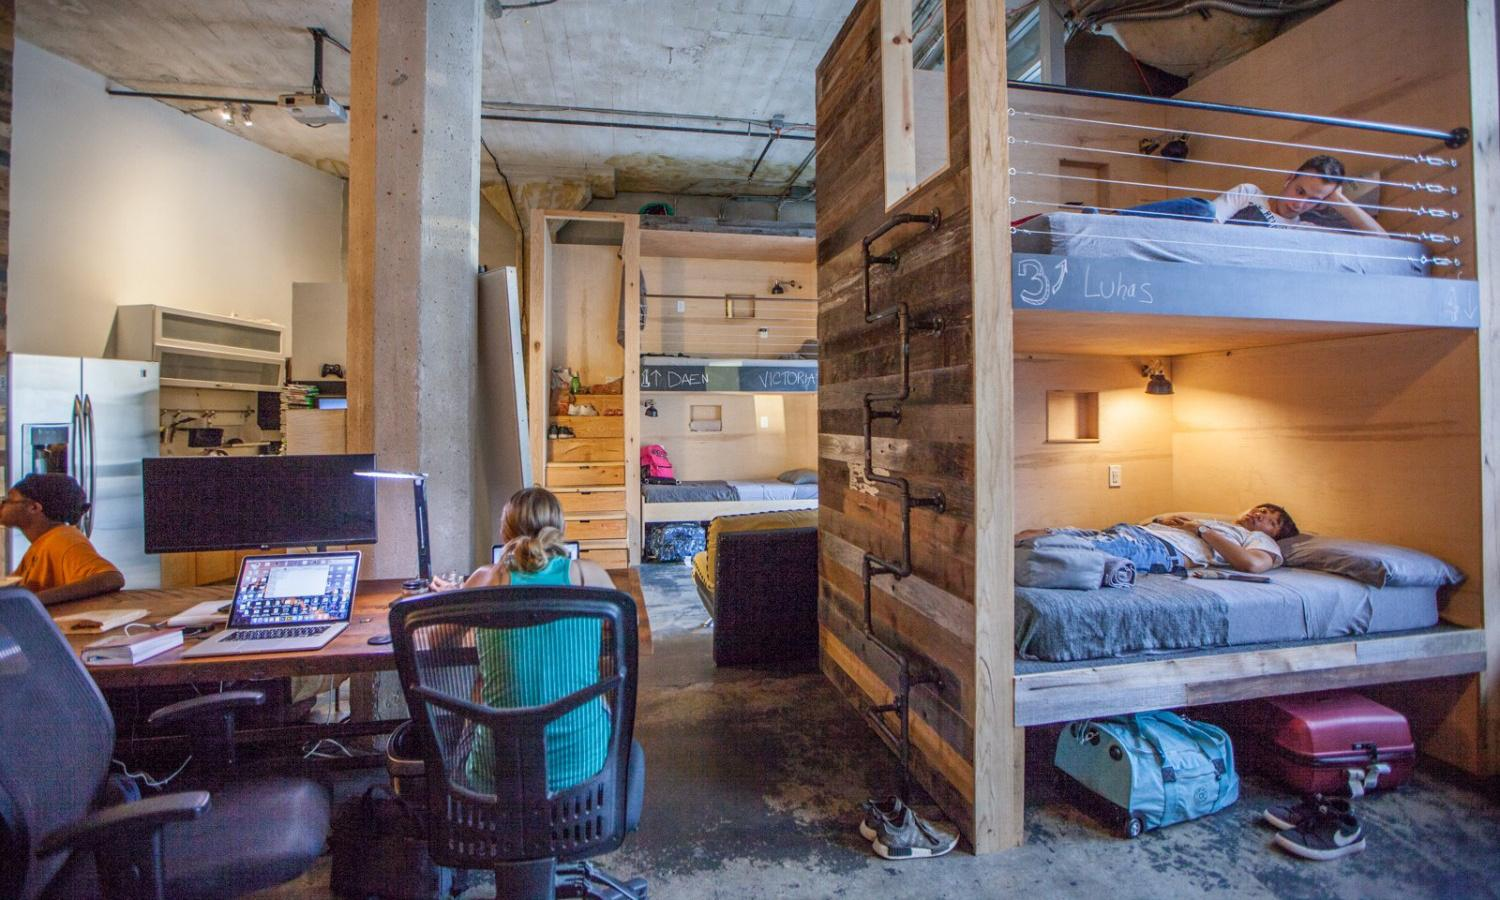 Silicon Valley's answer to the housing crises? Charging $1,200 for a bunk bed in a shared house